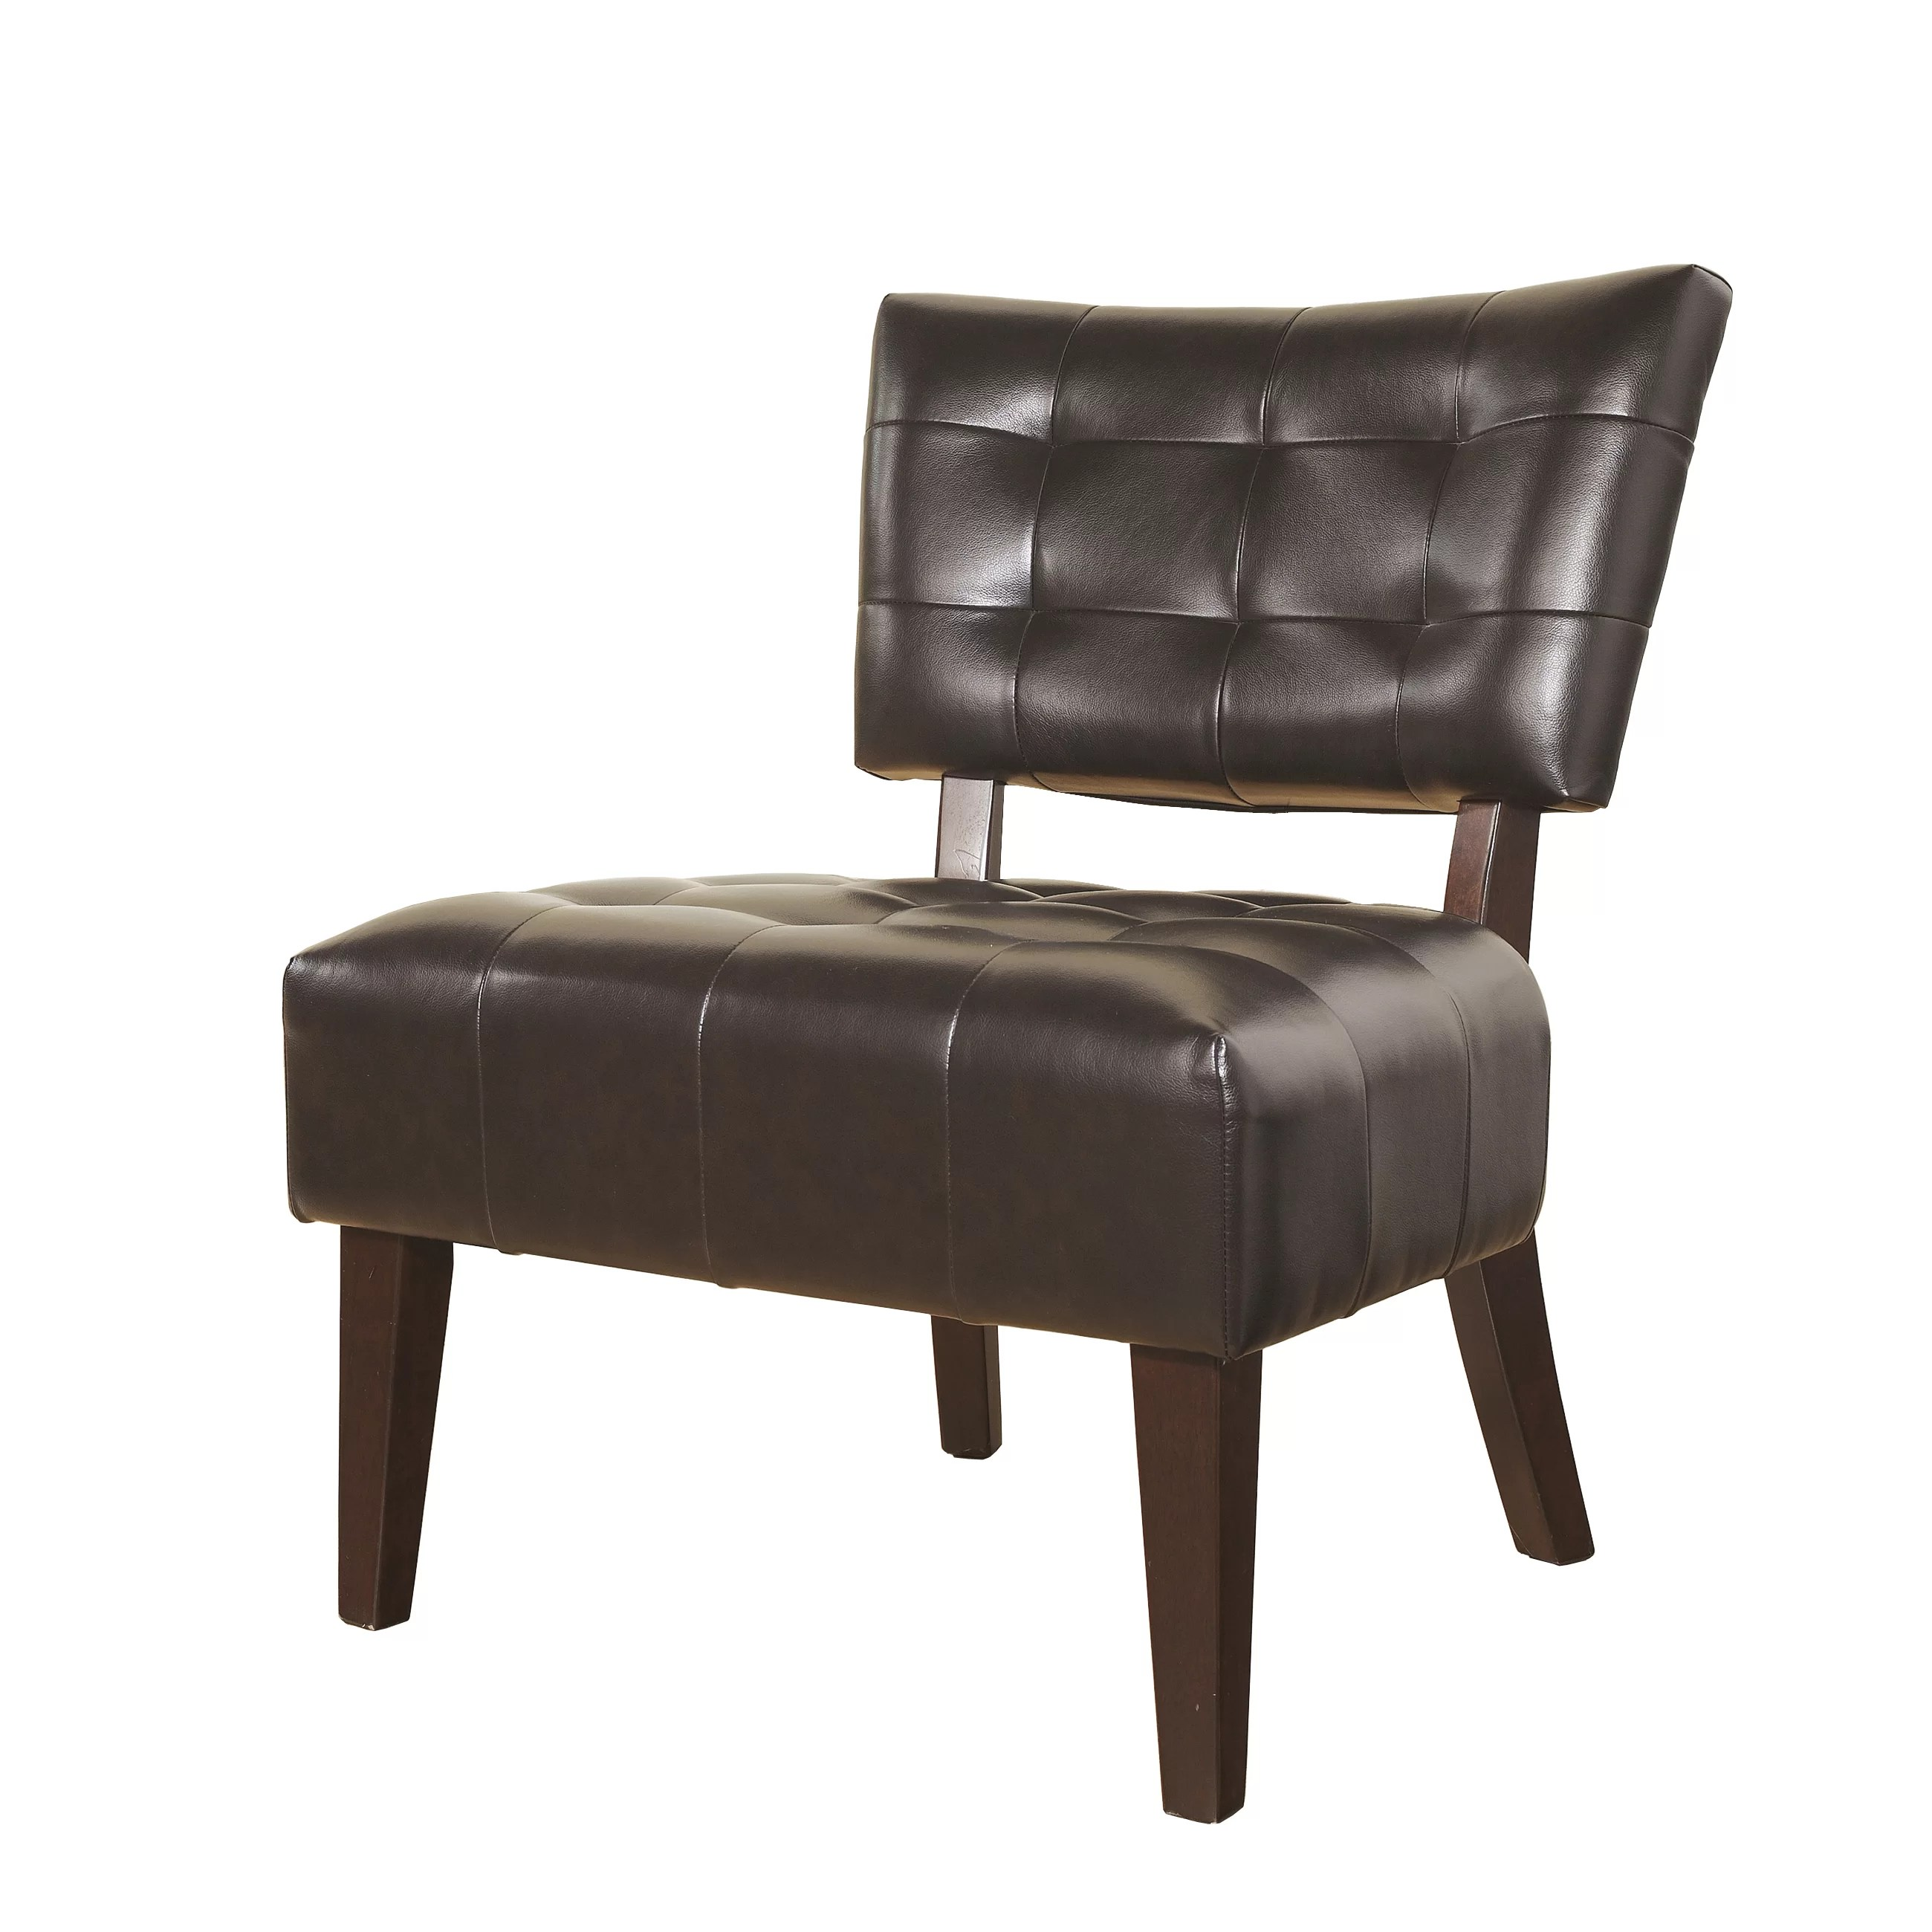 Large Accent Chairs Roundhill Furniture Anjotiya Faux Leather Tufted Chair